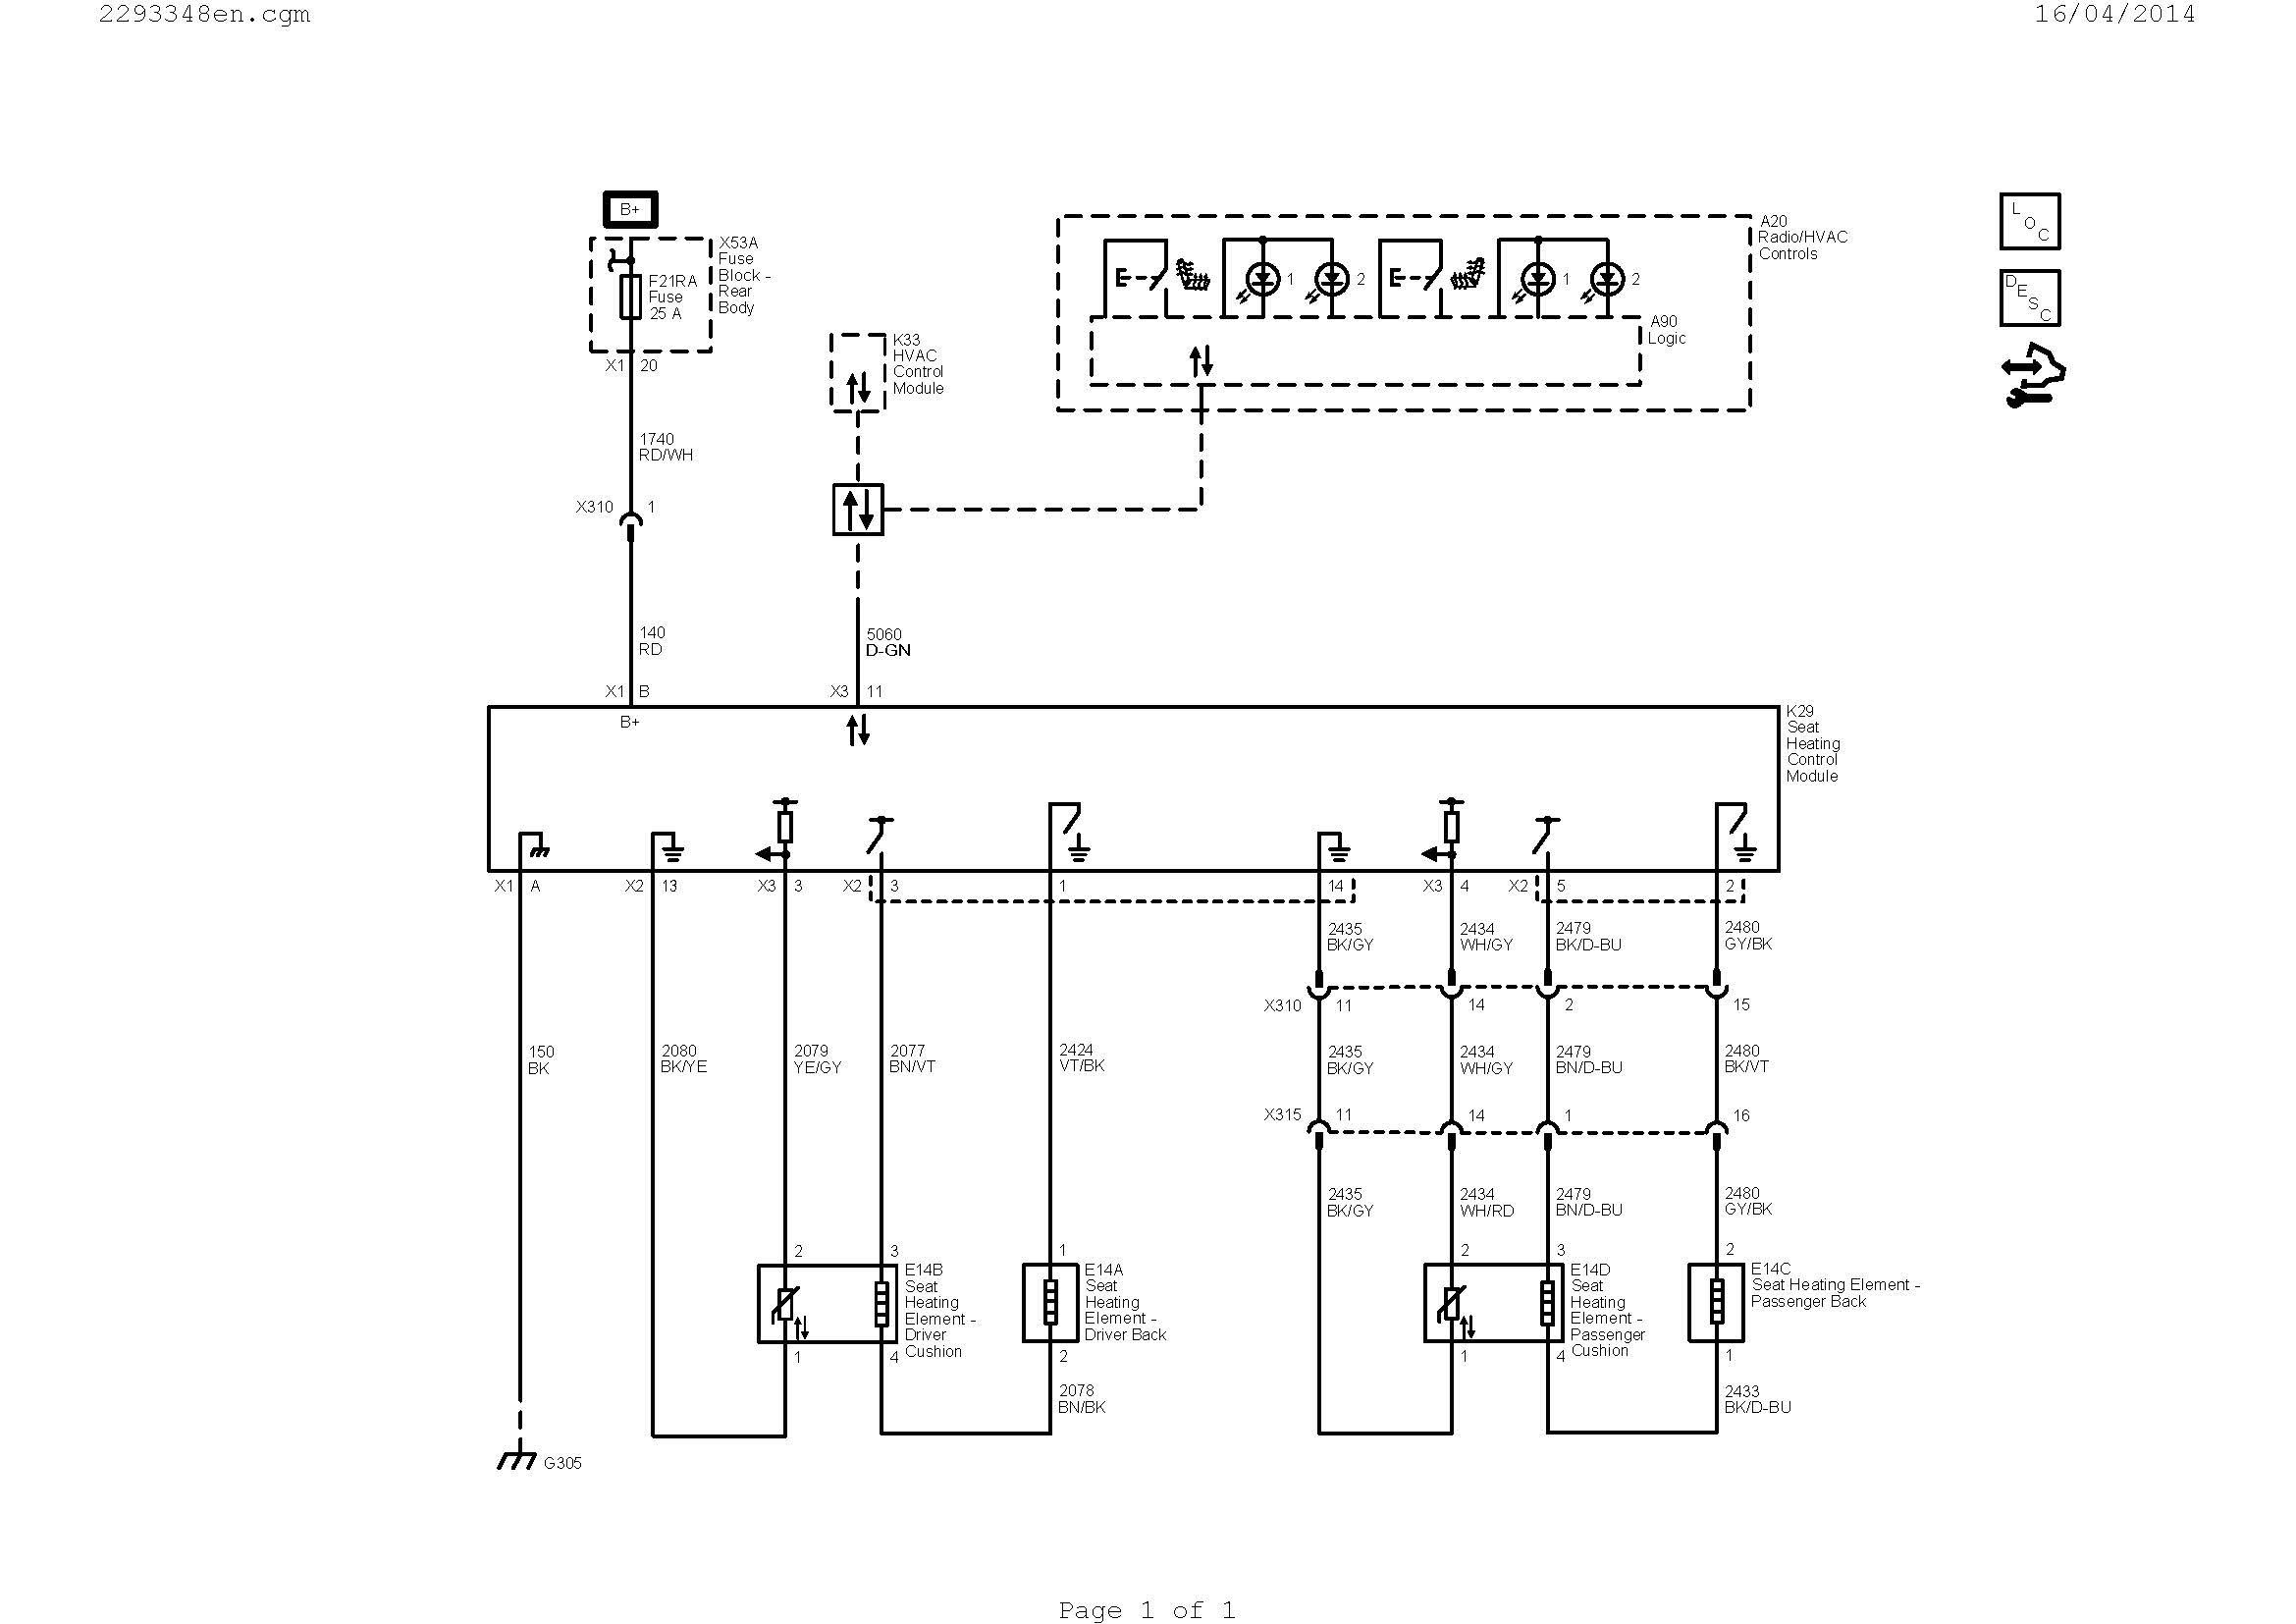 furnace blower motor wiring diagram Collection-air conditioner thermostat wiring diagram Download Wiring A Ac Thermostat Diagram New Wiring Diagram Ac 13-j